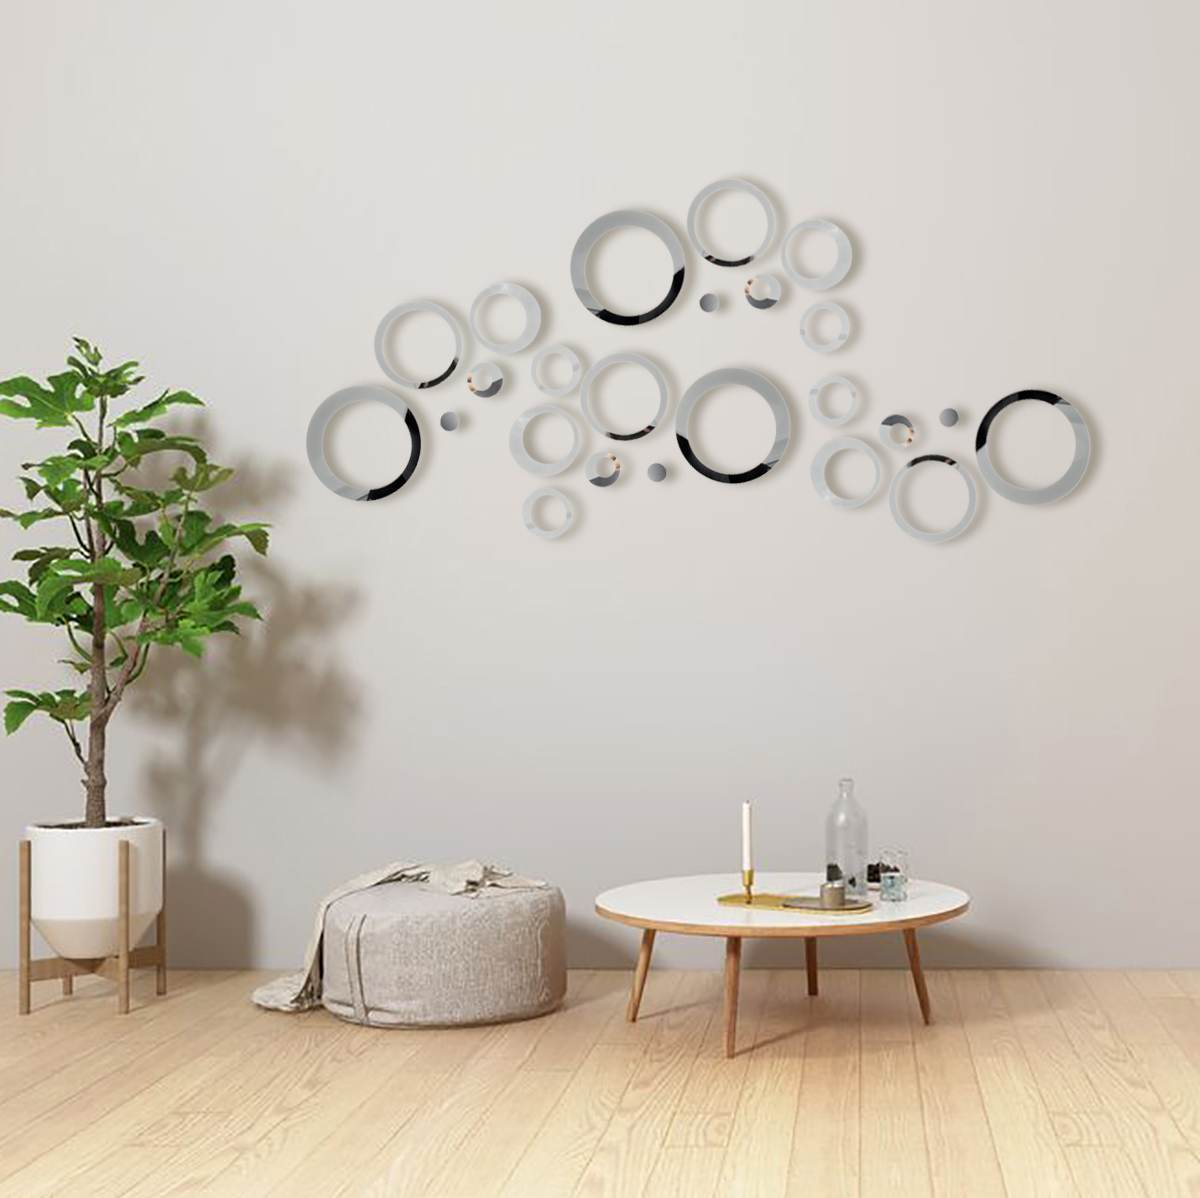 Us 2 66 43 Off 24pcs Set 3d Diy Circles Wall Sticker Home Decoration Mirror Wall Stickers For Tv Background Home Decor Acrylic Decor Wall Art In